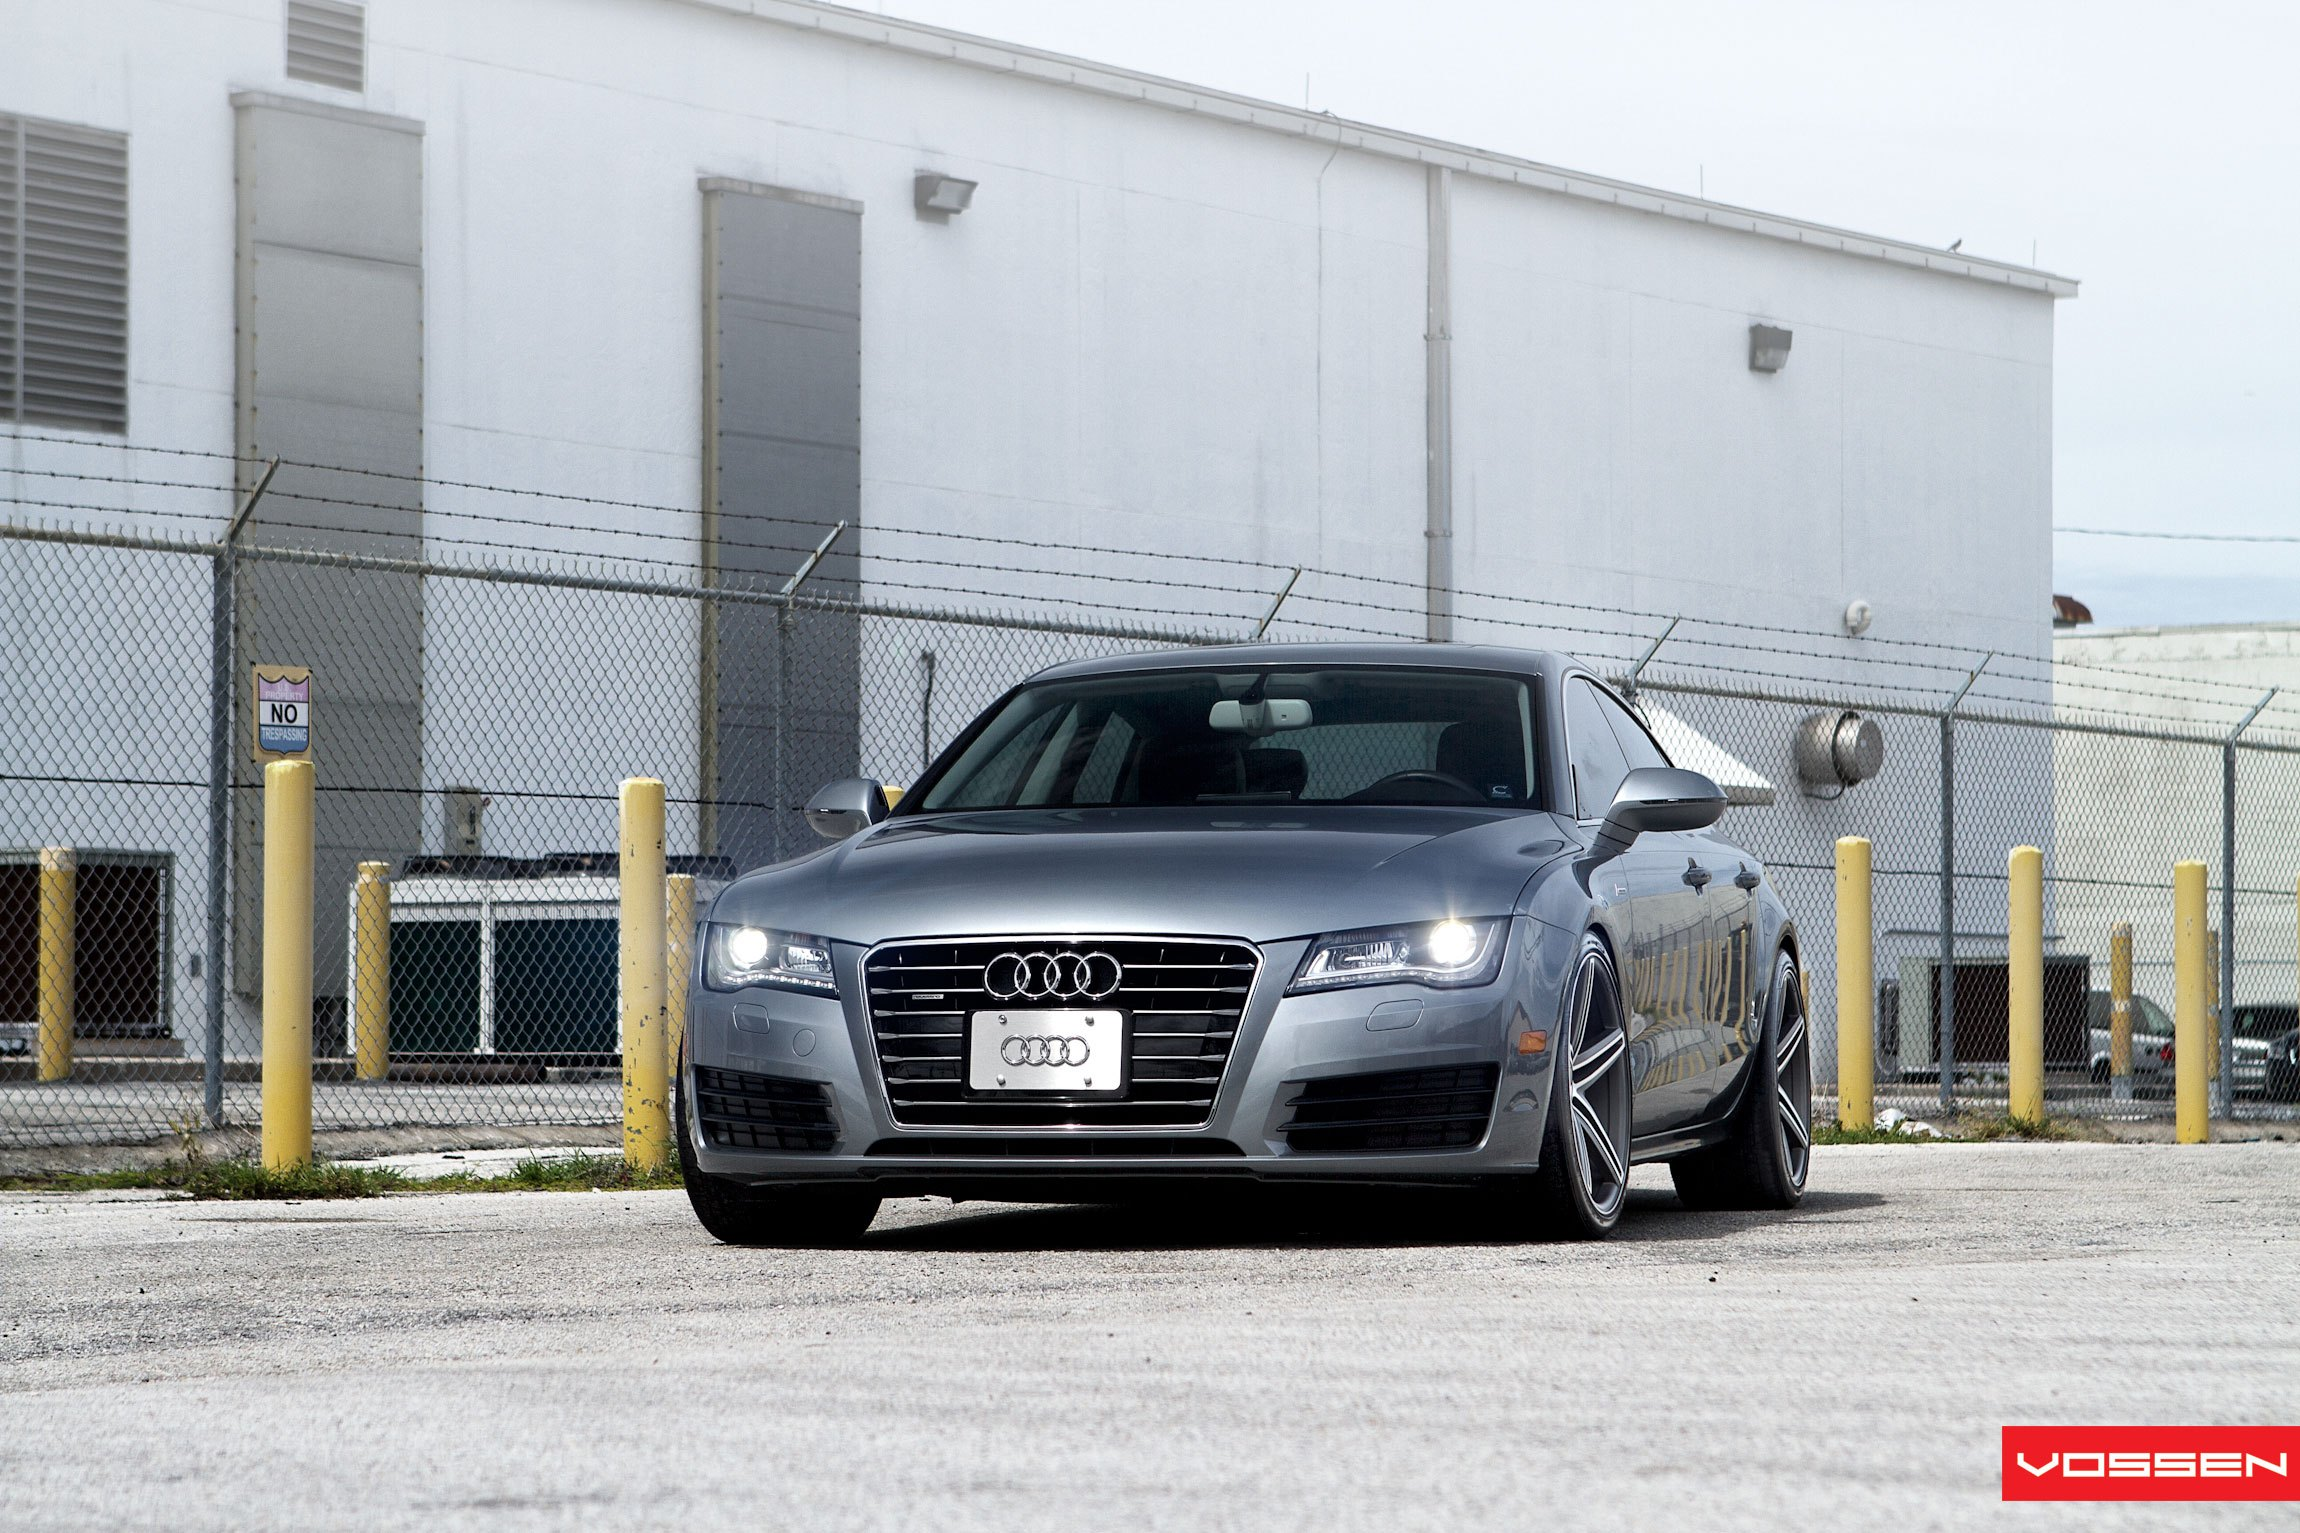 Custom Chrome Grille on Audi A7 - Photo by Vossen